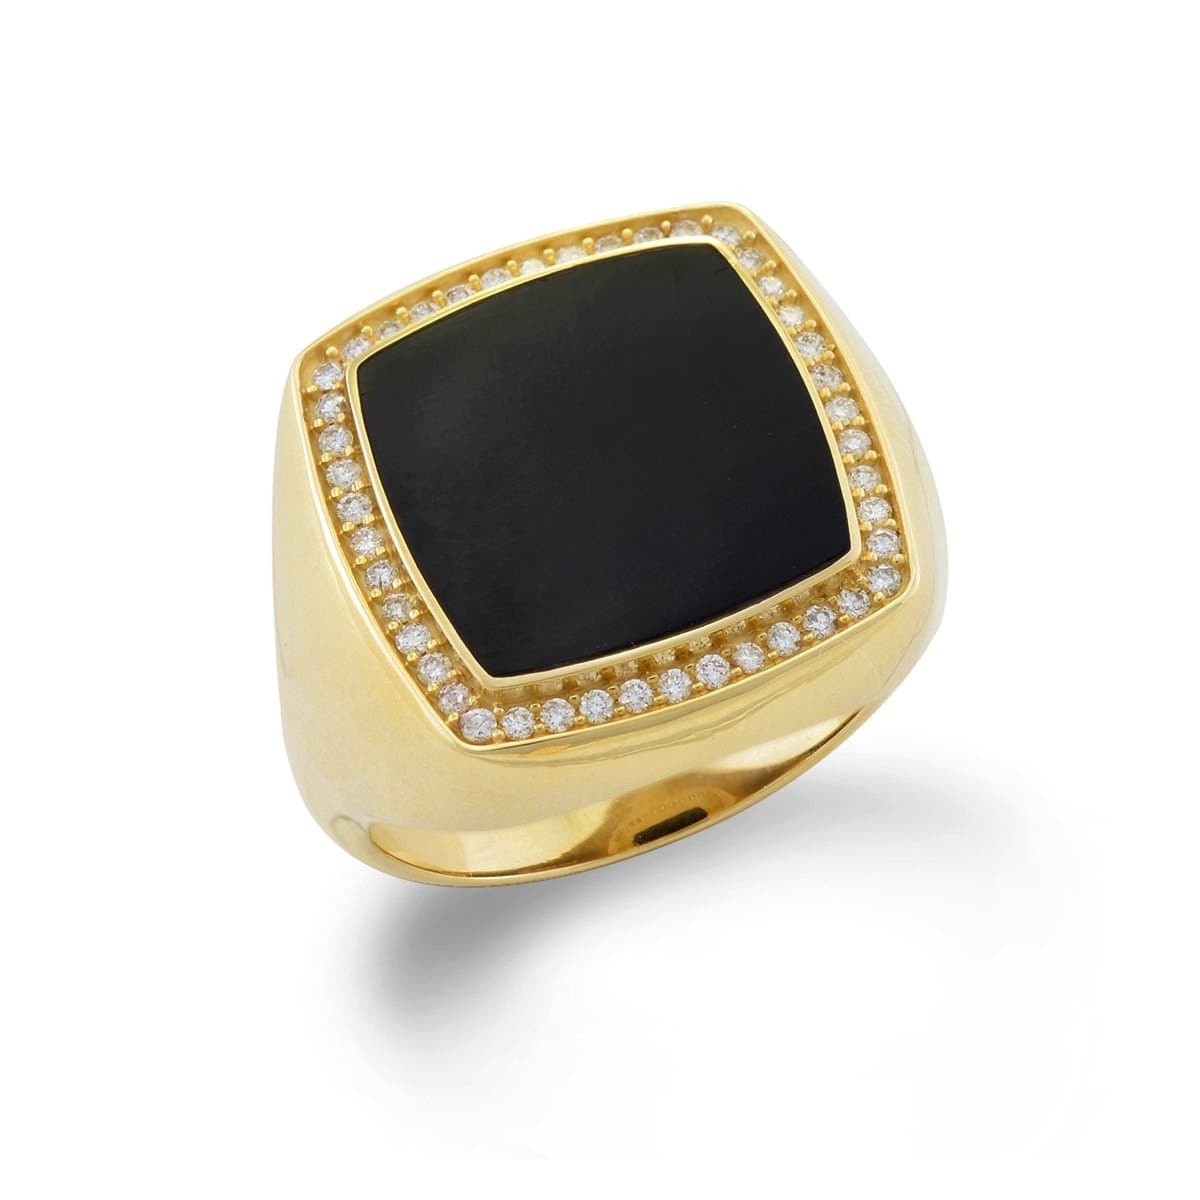 Black Coral Ring in 14K Yellow Gold with Diamonds-015-06924